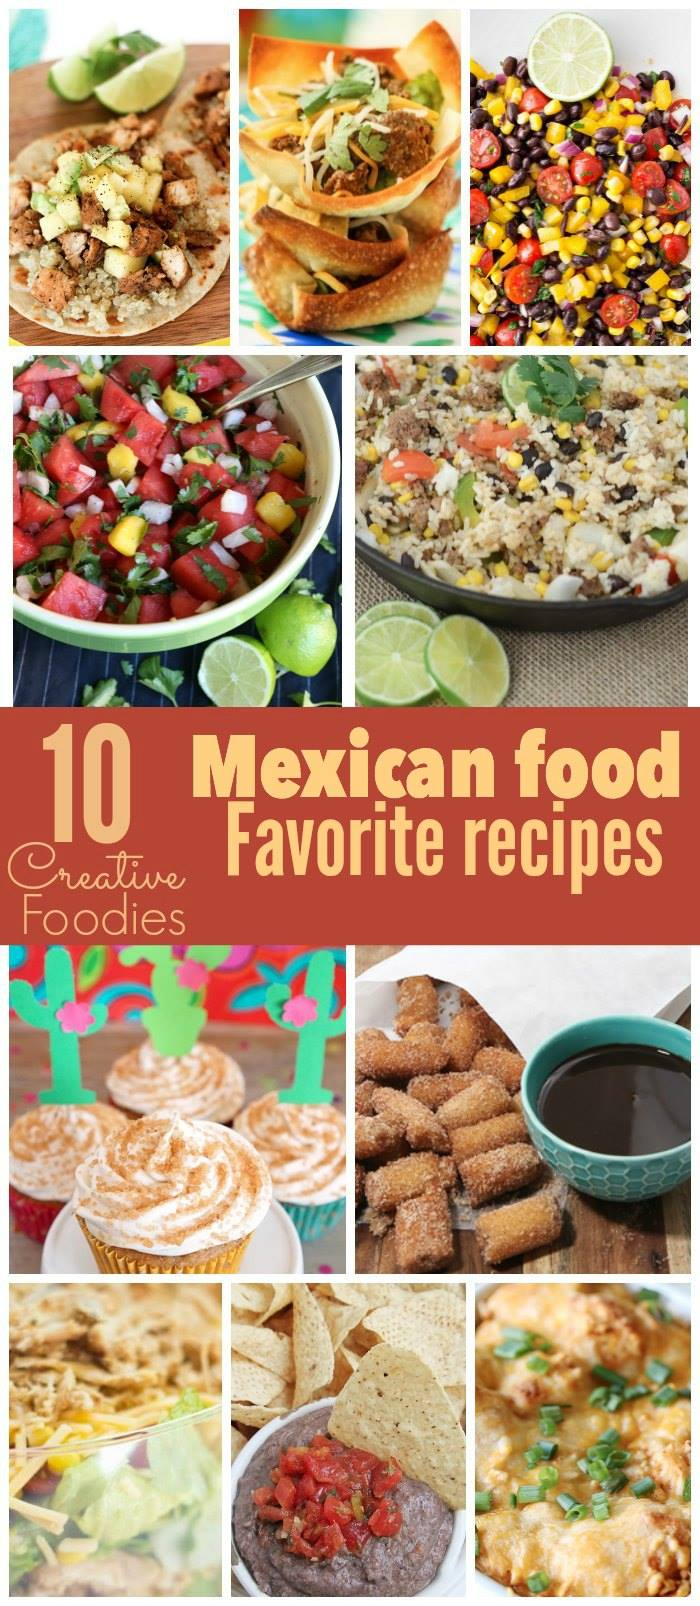 Delicious Mexican Food Recipes and Treats perfect for summer celebrations!